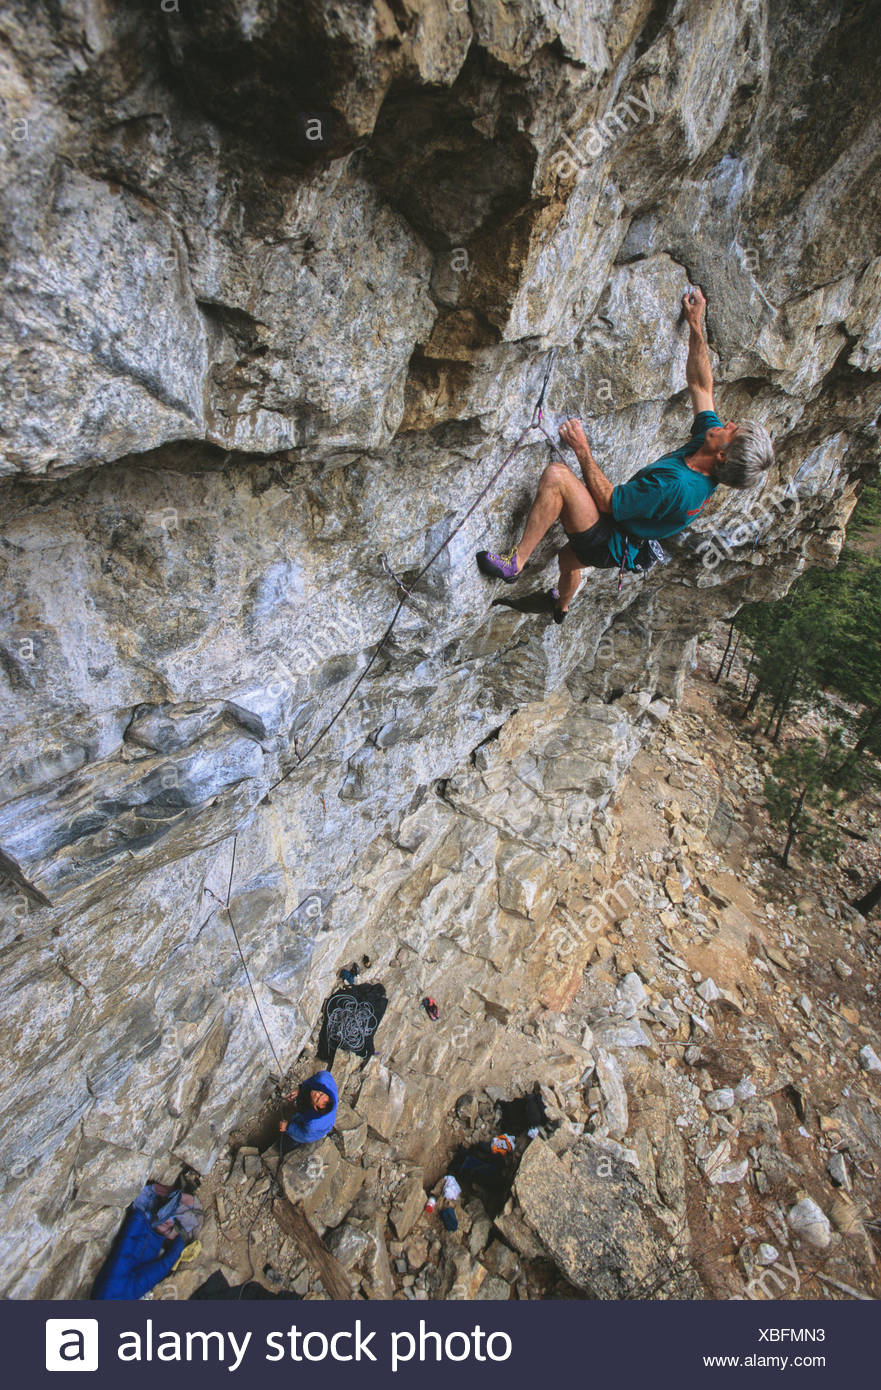 Lindsay Eltis climbing This Mortal Coil 5.12d on The Wave Wall Skaha Bluffs, Penticton, British Columbia, Canada. - Stock Image